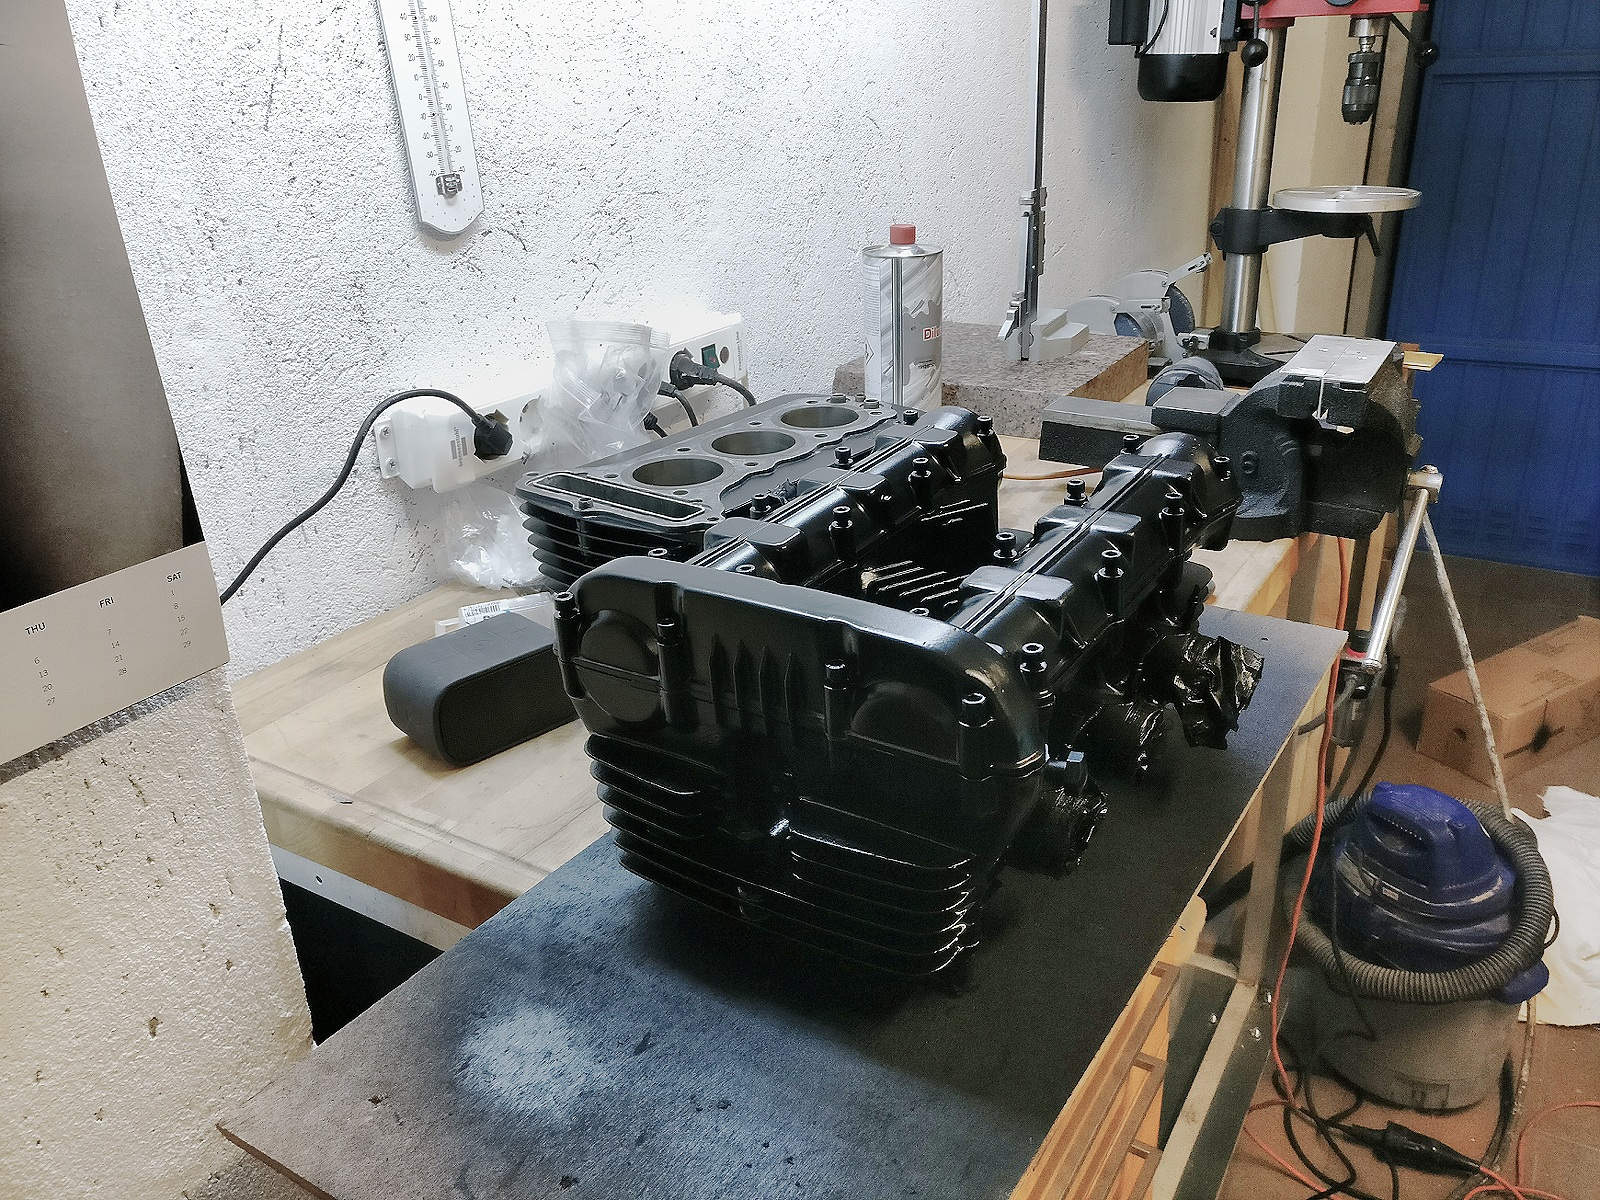 xs750 engine part 3